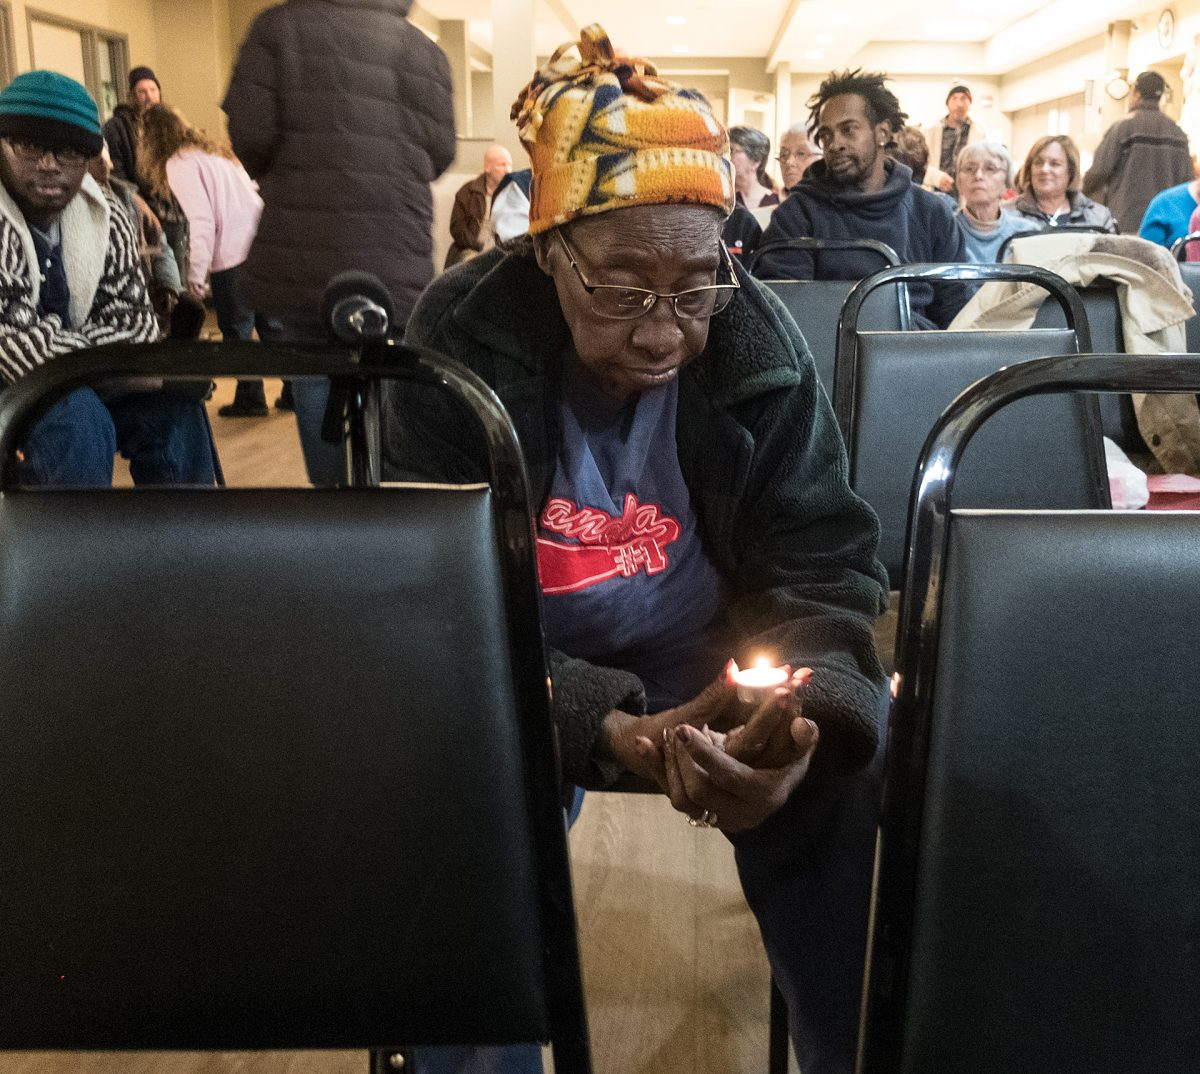 Betty Hall prays while holding a candle during the Interfaith Prayer Service for an End to Poverty at the House of Mercy on Nov. 15. The service is part of a weeklong events leading up to the Day of the Poor. Courier Photo by John Haeger.